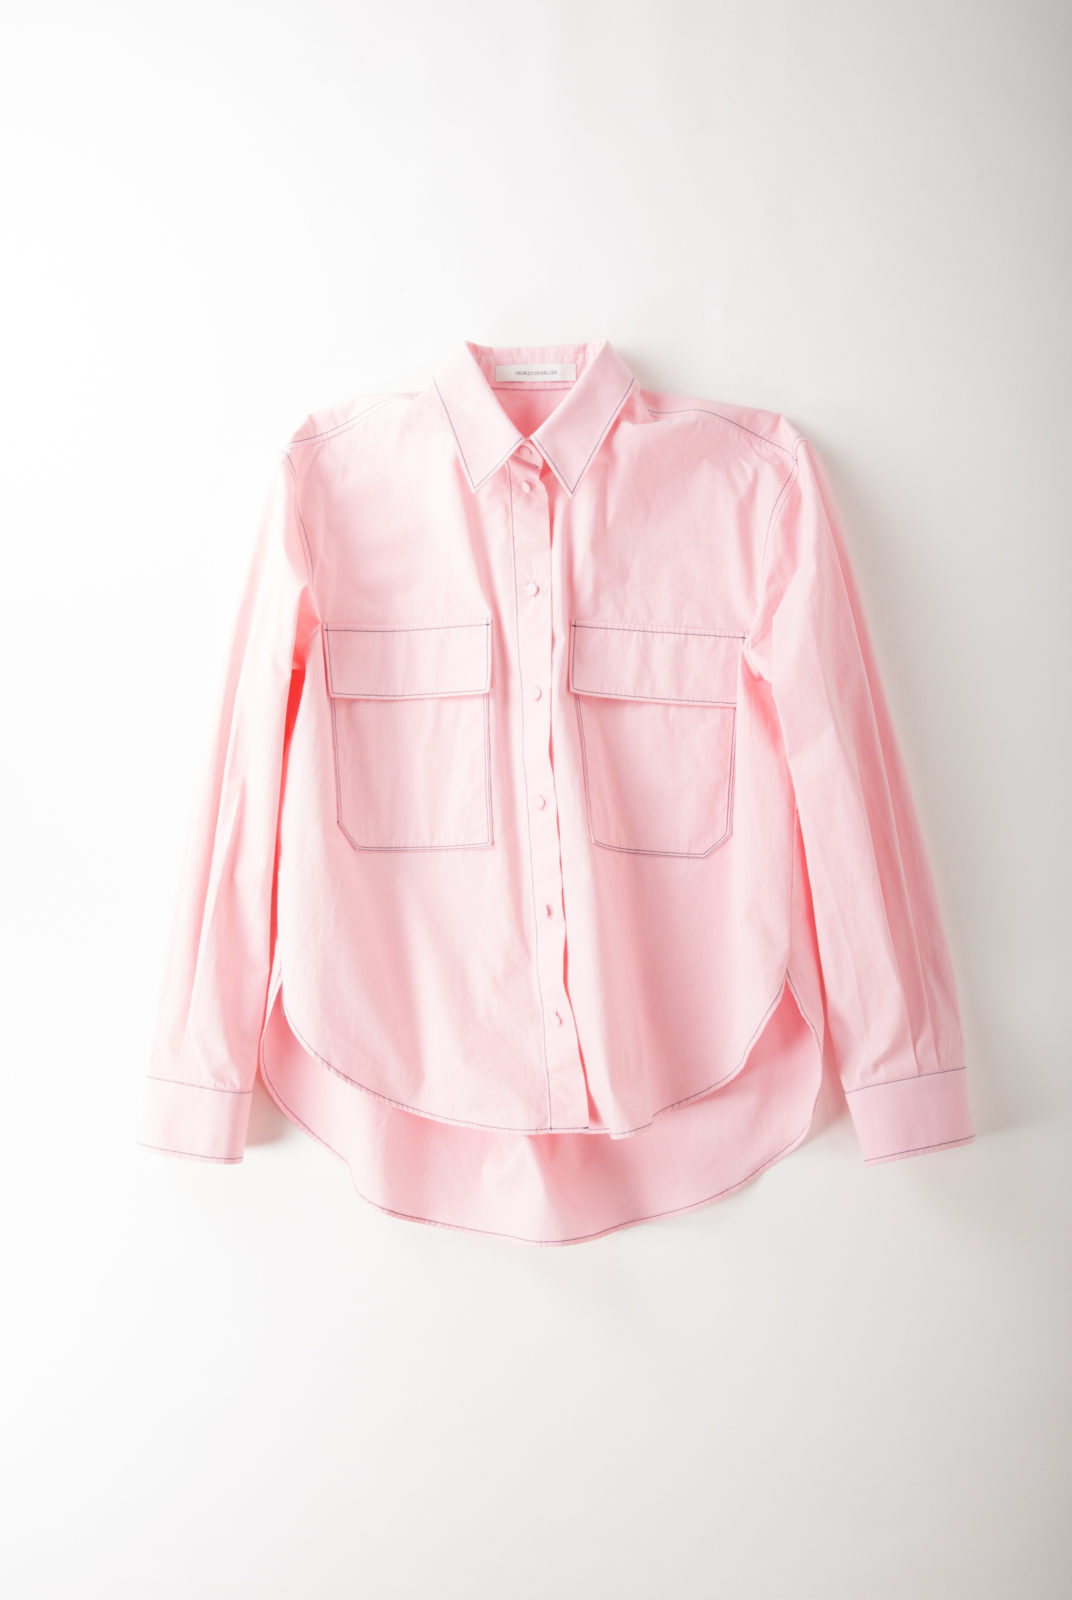 chemise, rose, couture contrastante bleu, poches poitrines, cedric charlier